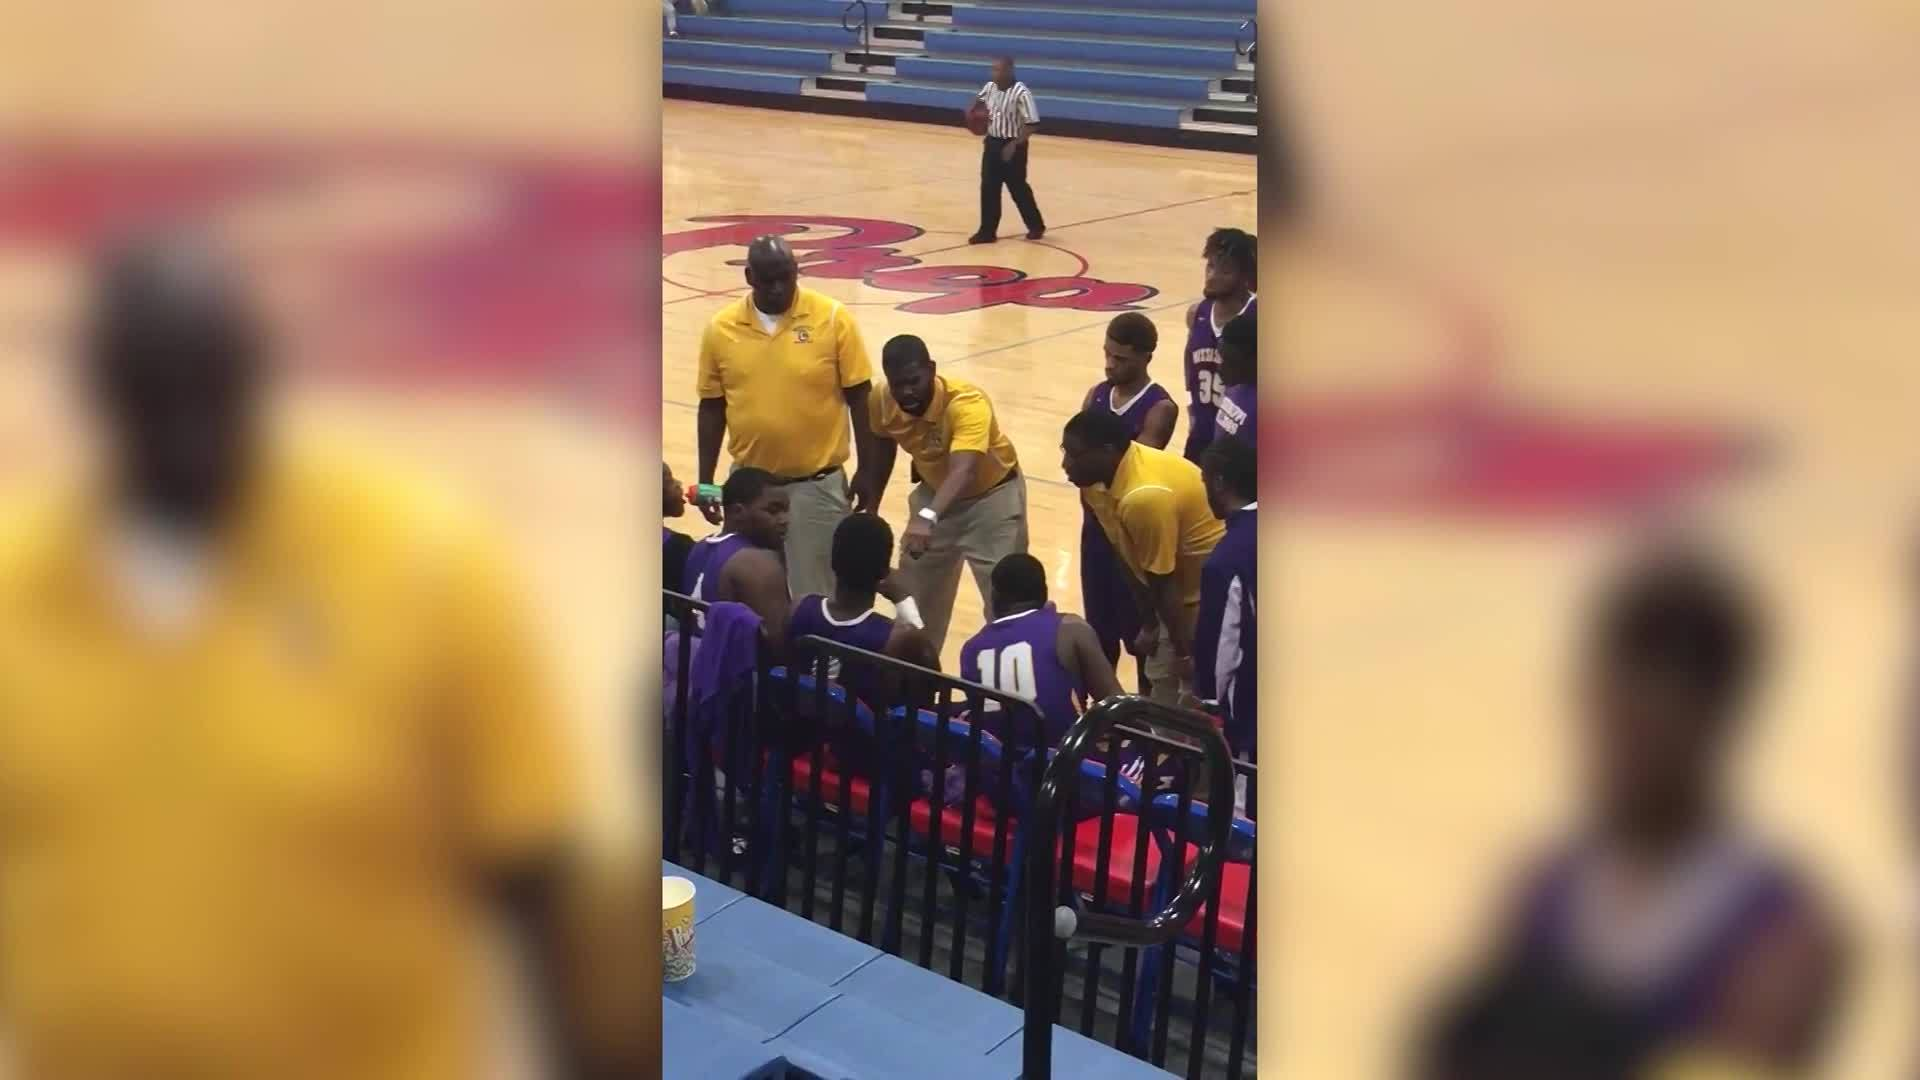 Viral_video_clip_shows_coach_with_basket_0_20181114153331